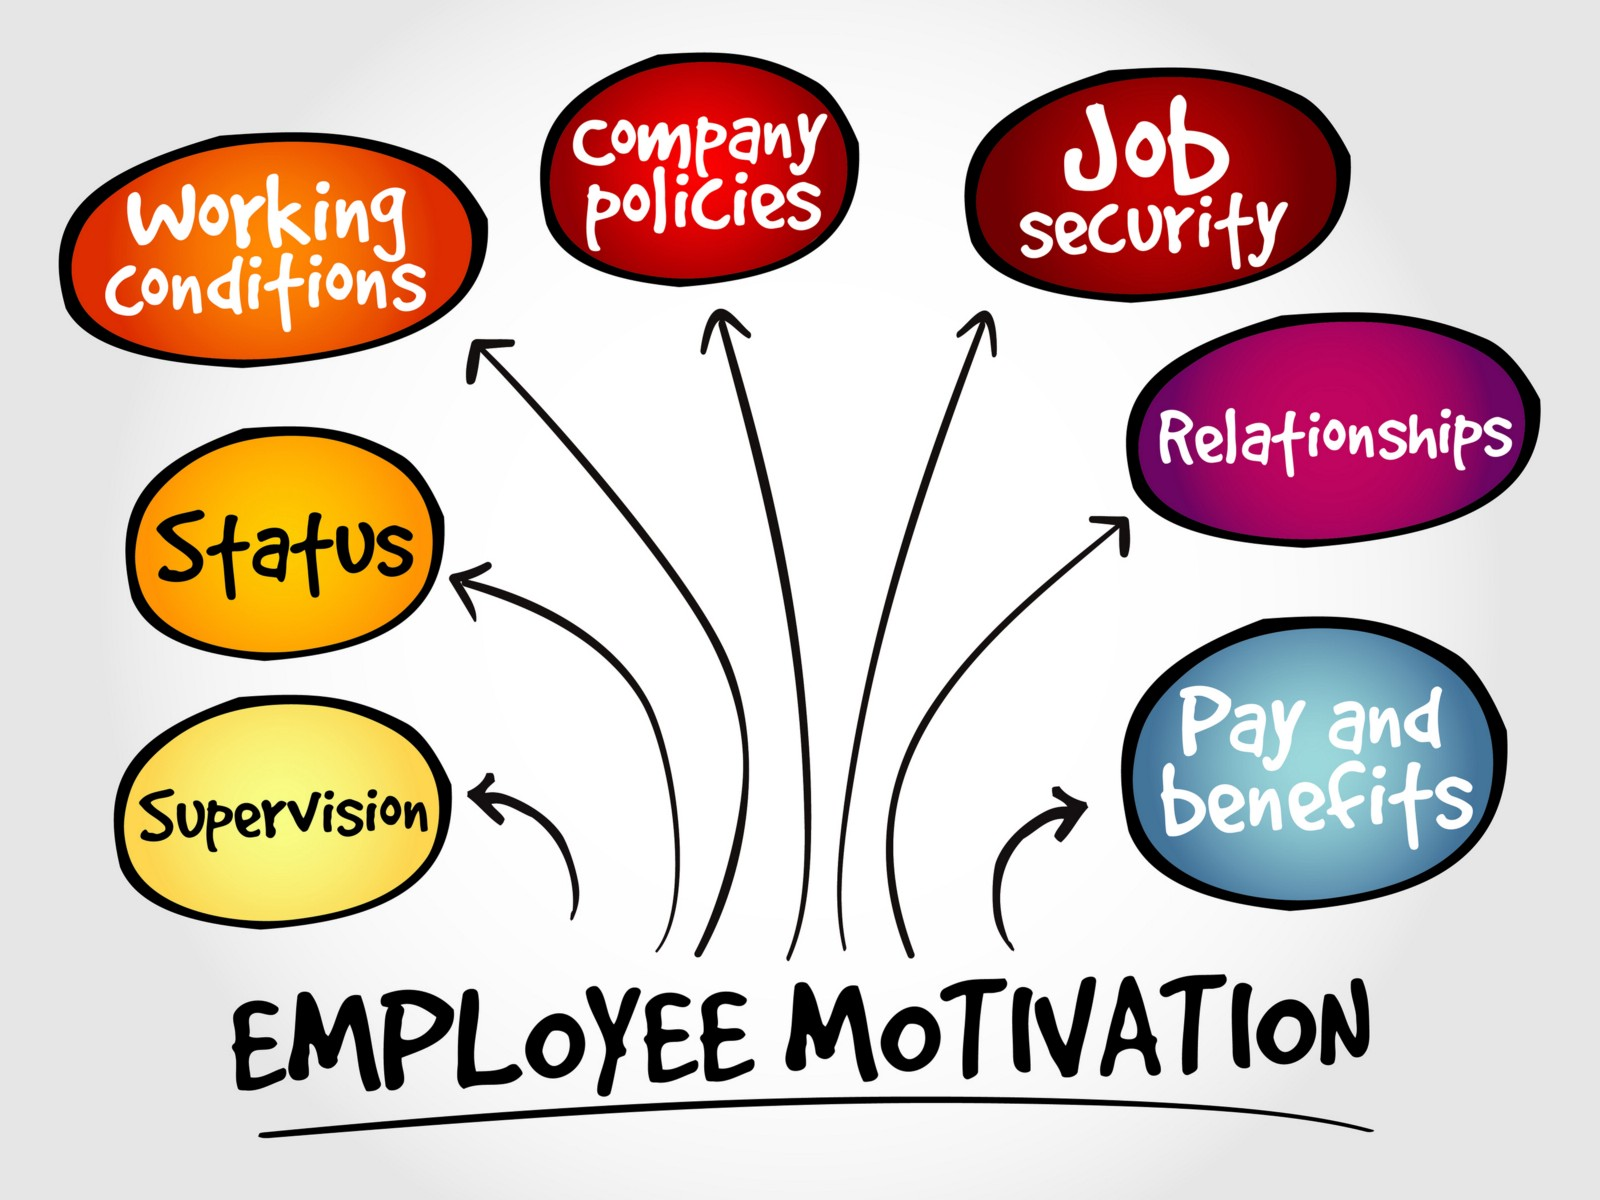 Benefits: More Important Than Salary? - Corporate ...